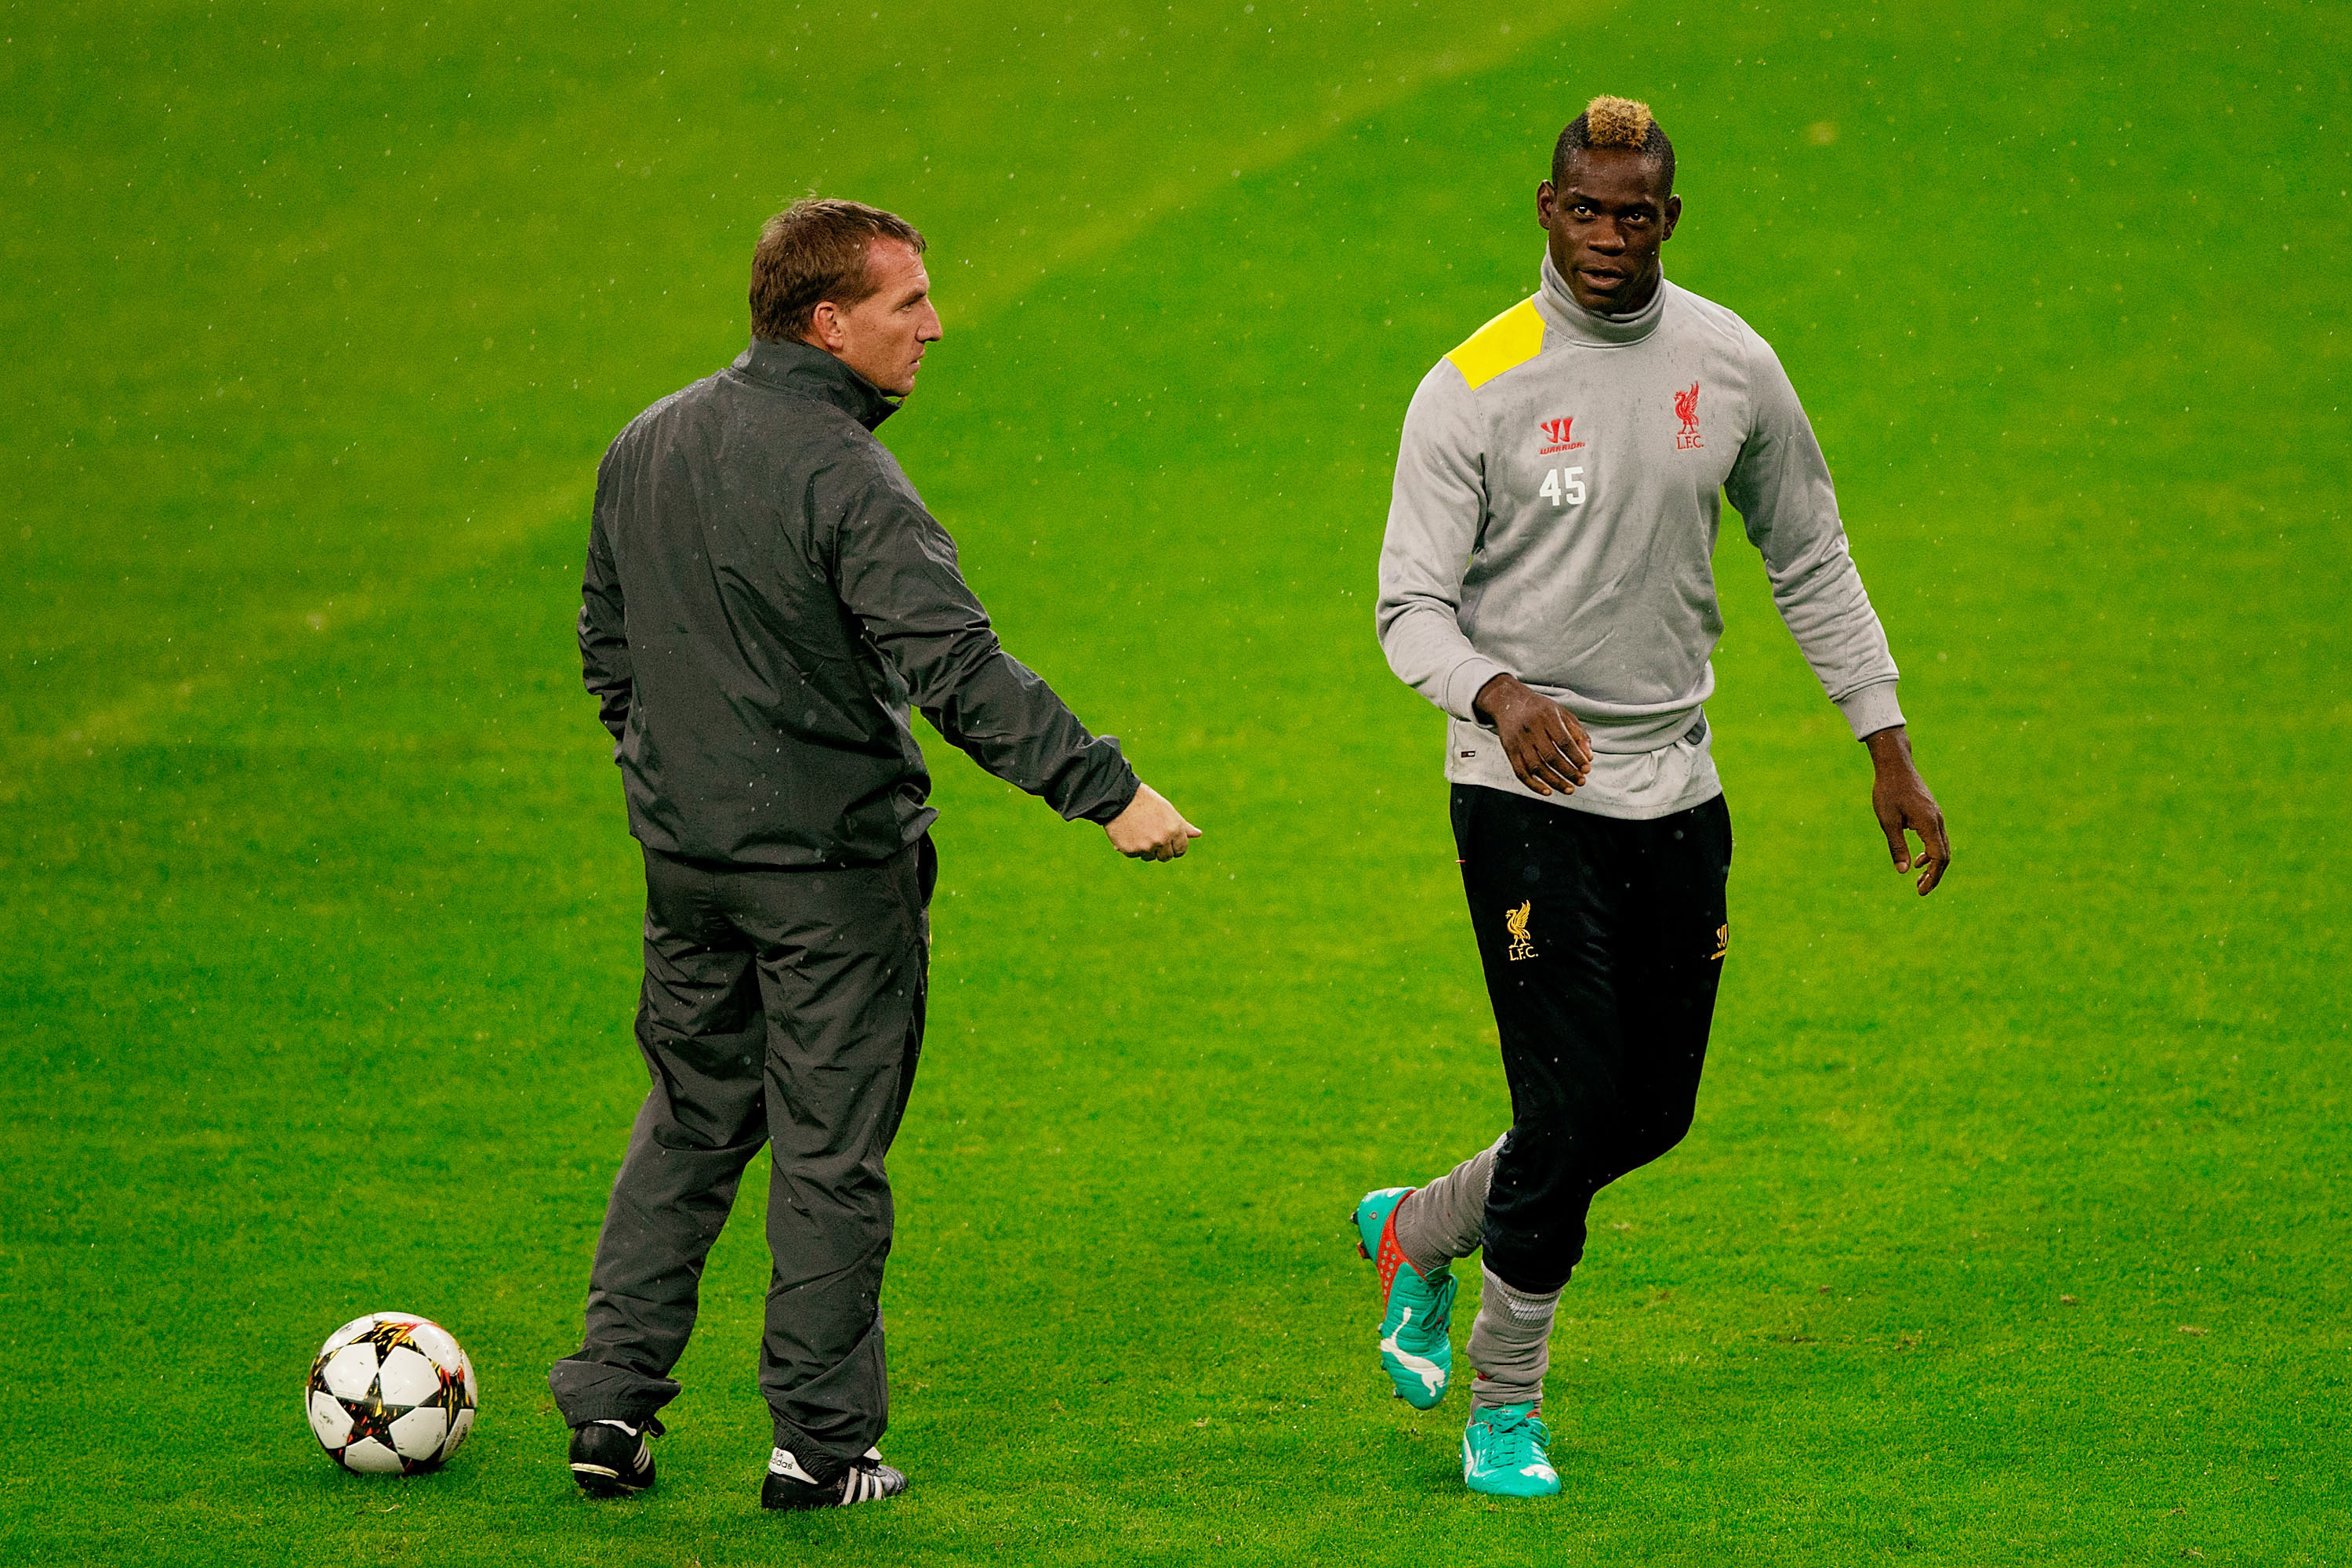 Brendan Rodgers doesn't understand how Mario Balotelli plays